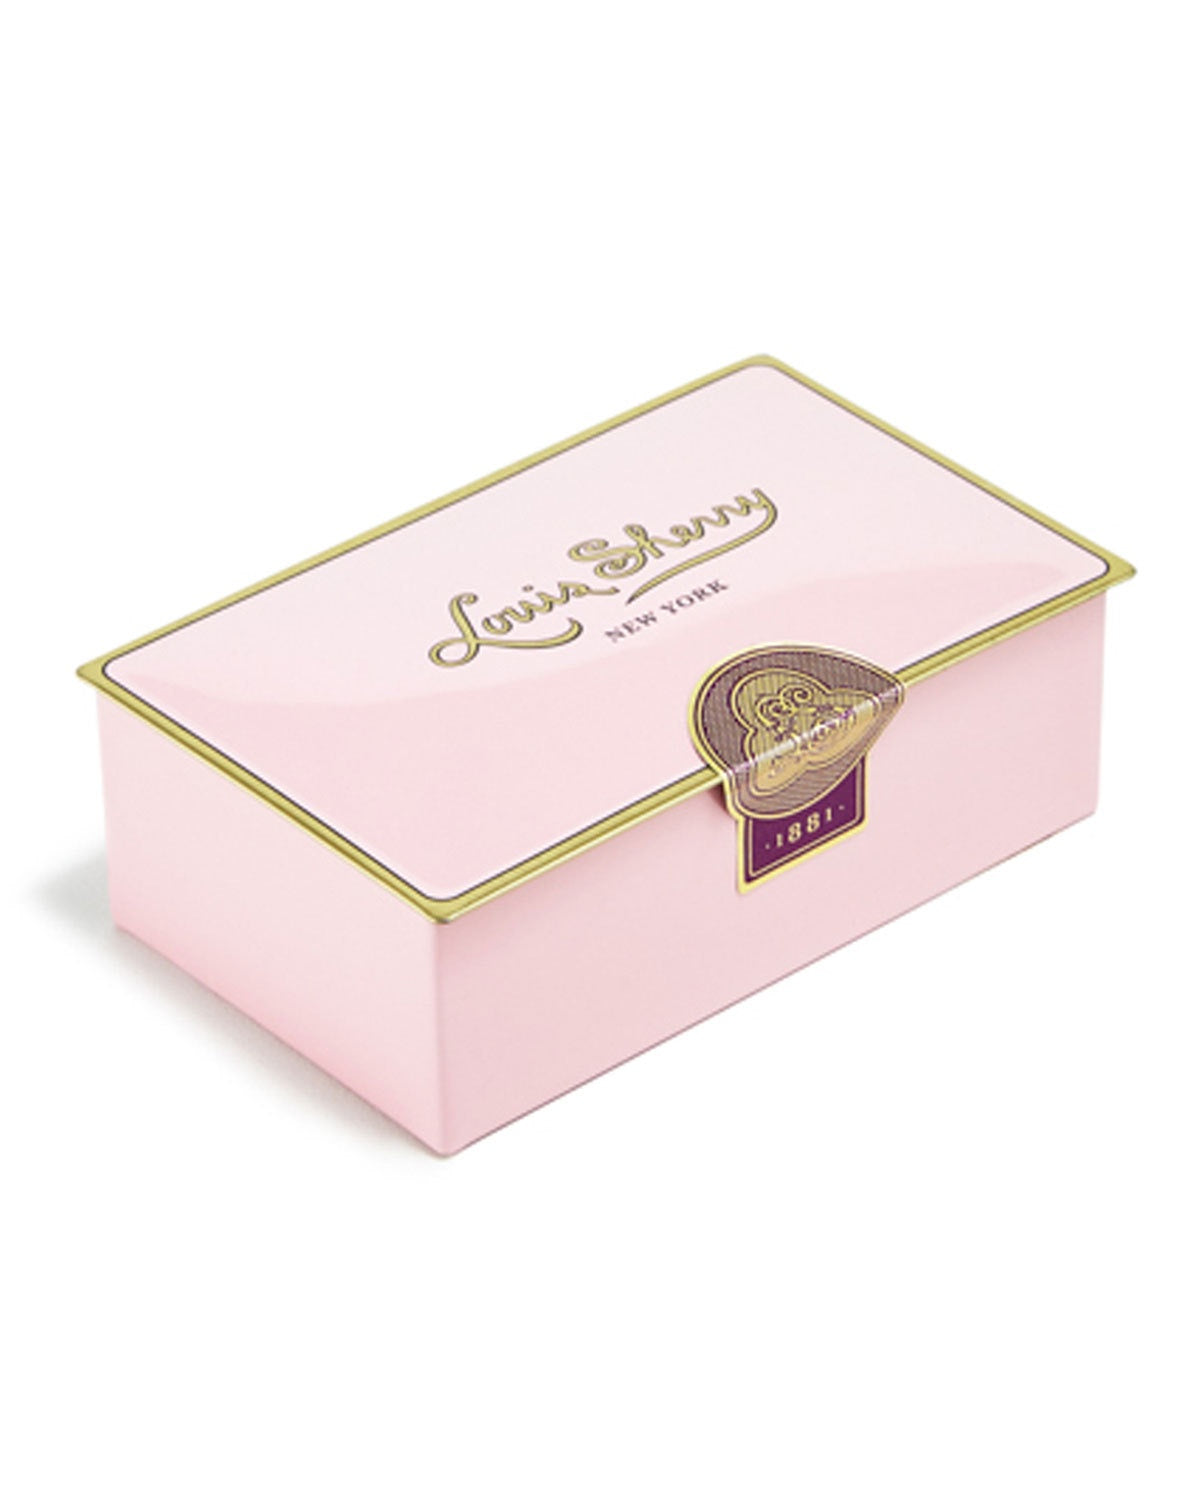 Louis Sherry Camellia Pink Two-Piece Chocolate Truffle Tin - WishBasket